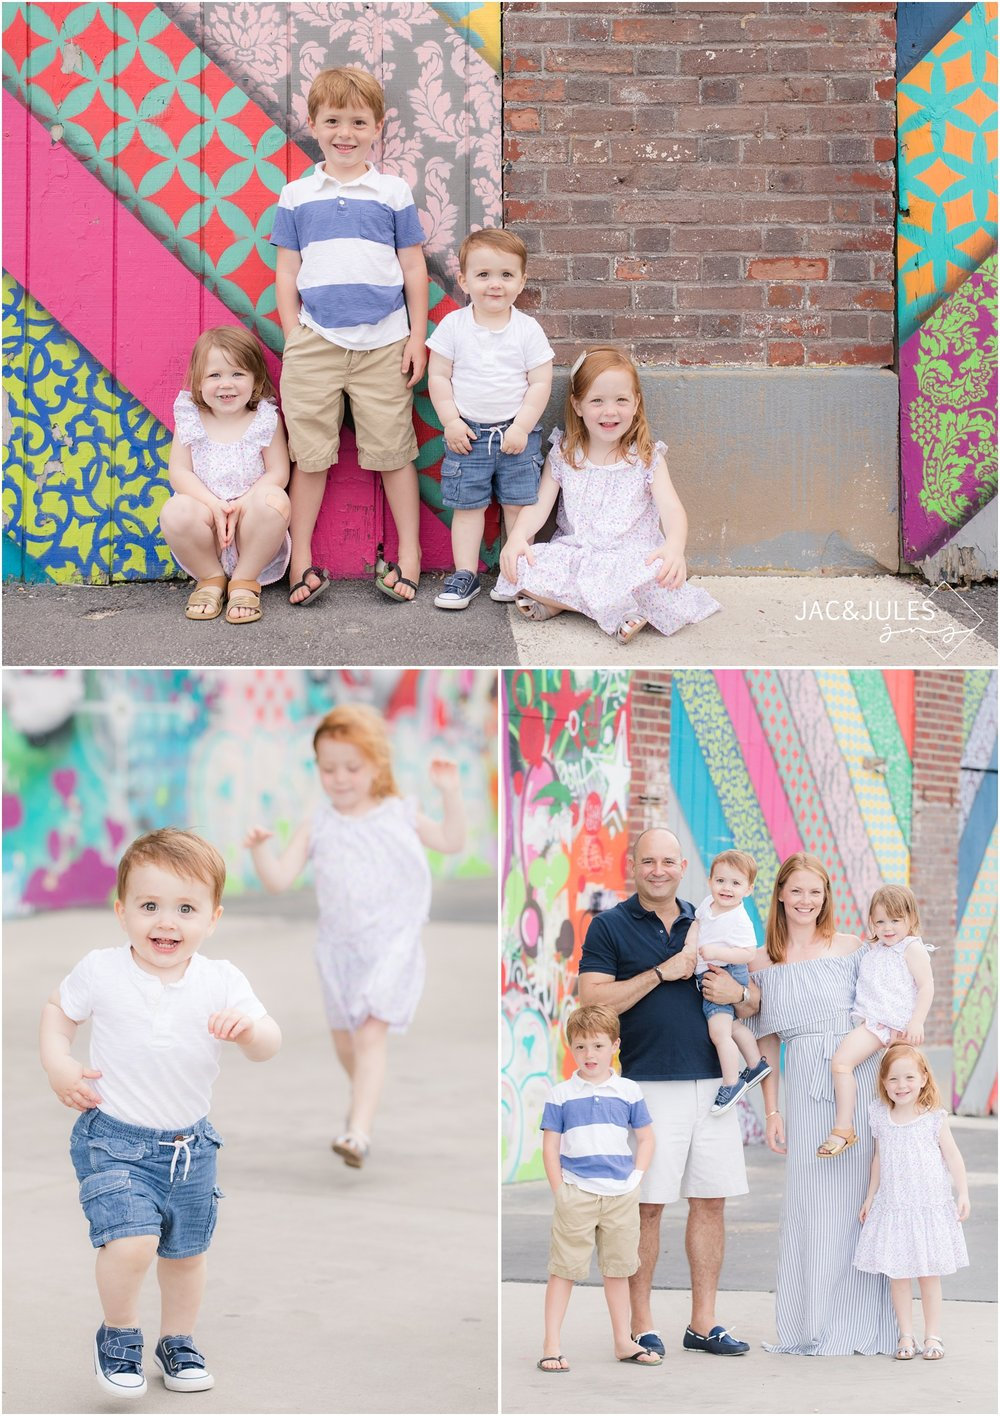 fun family photos in asbury park, nj with graffiti.